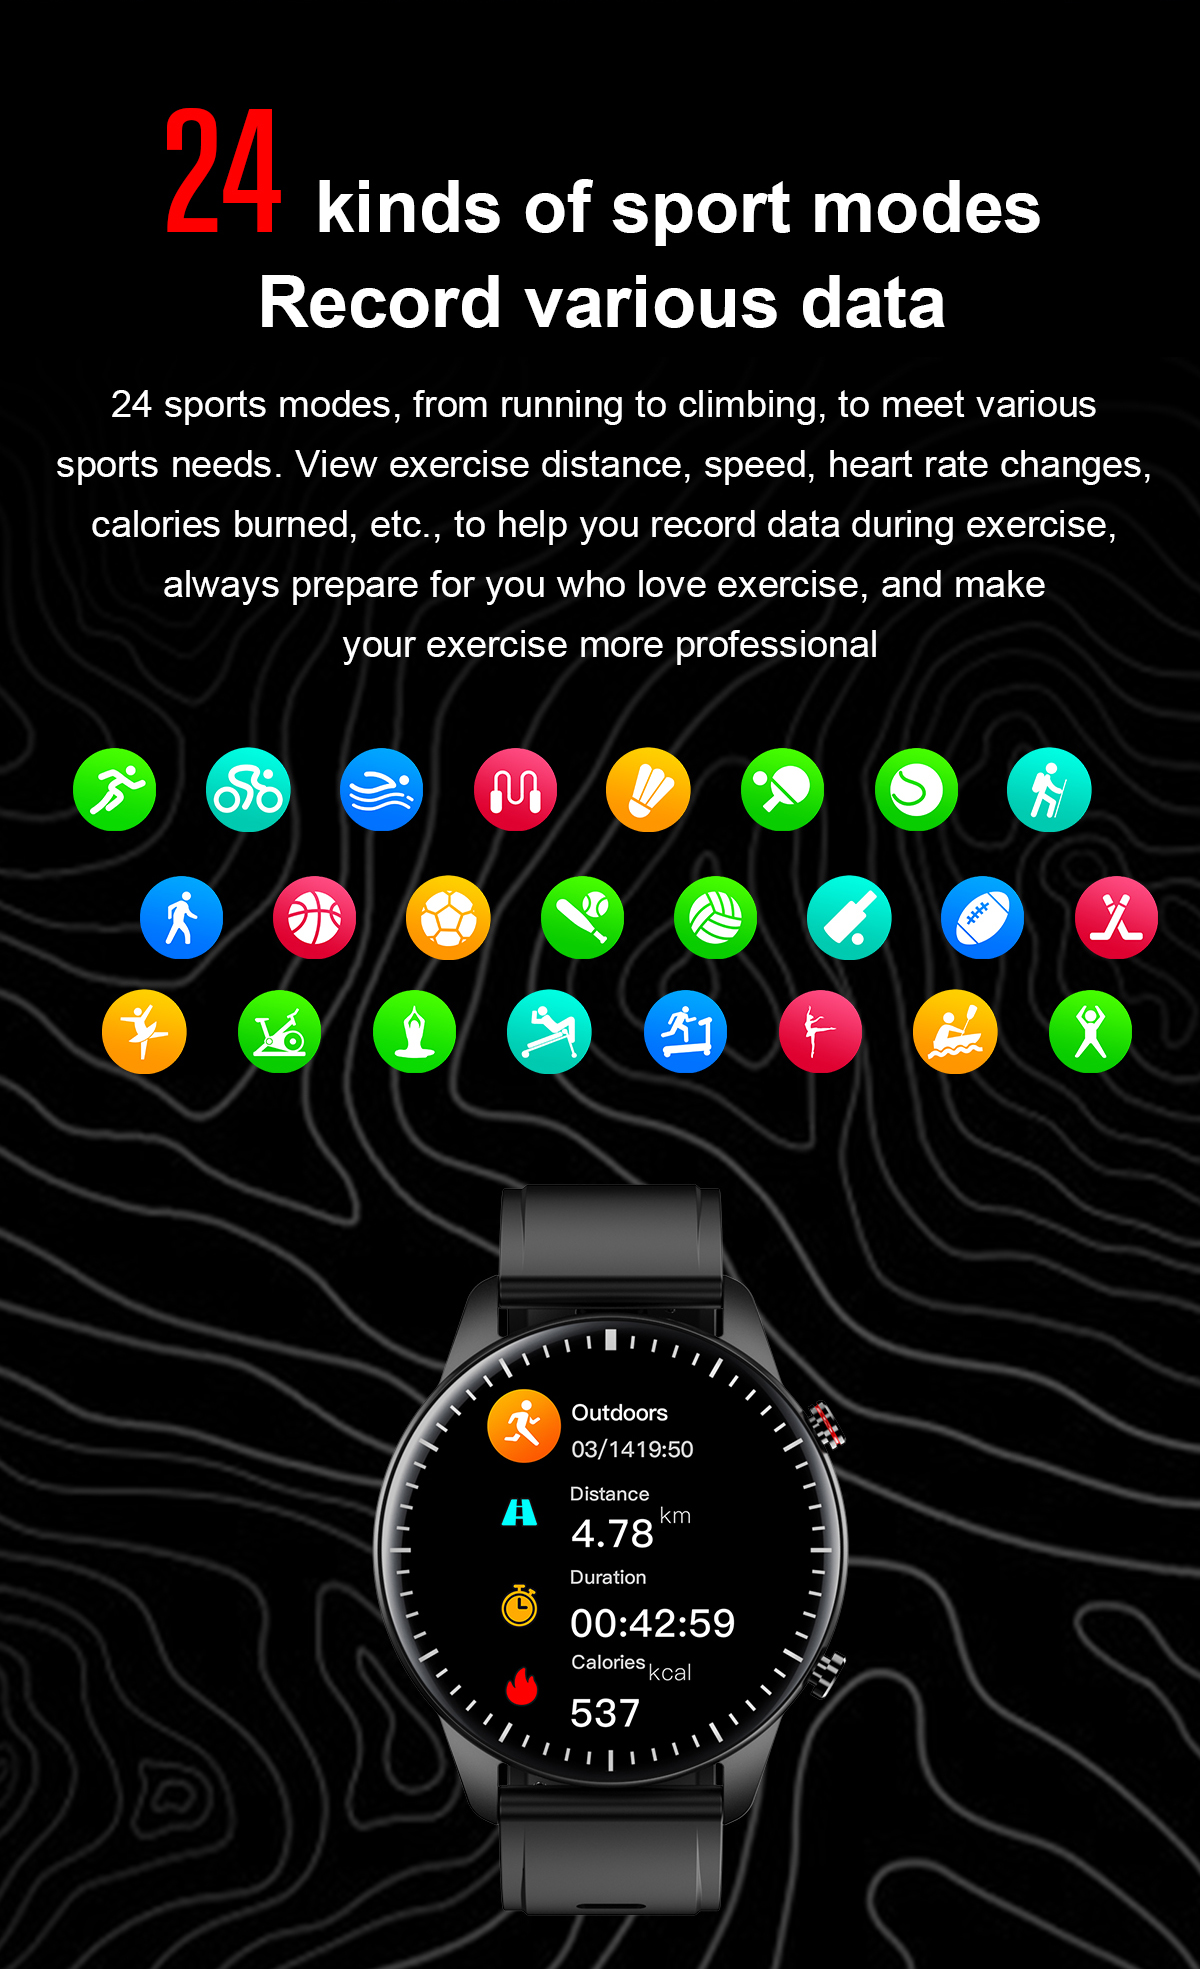 Hc8502534286445dcaff90db5e2eac59bS 2021 NEW Smart Watch Women Men Full Touch Fitness Tracker IP67 Waterproof Smartwatch For Android Xiaomi Redmi